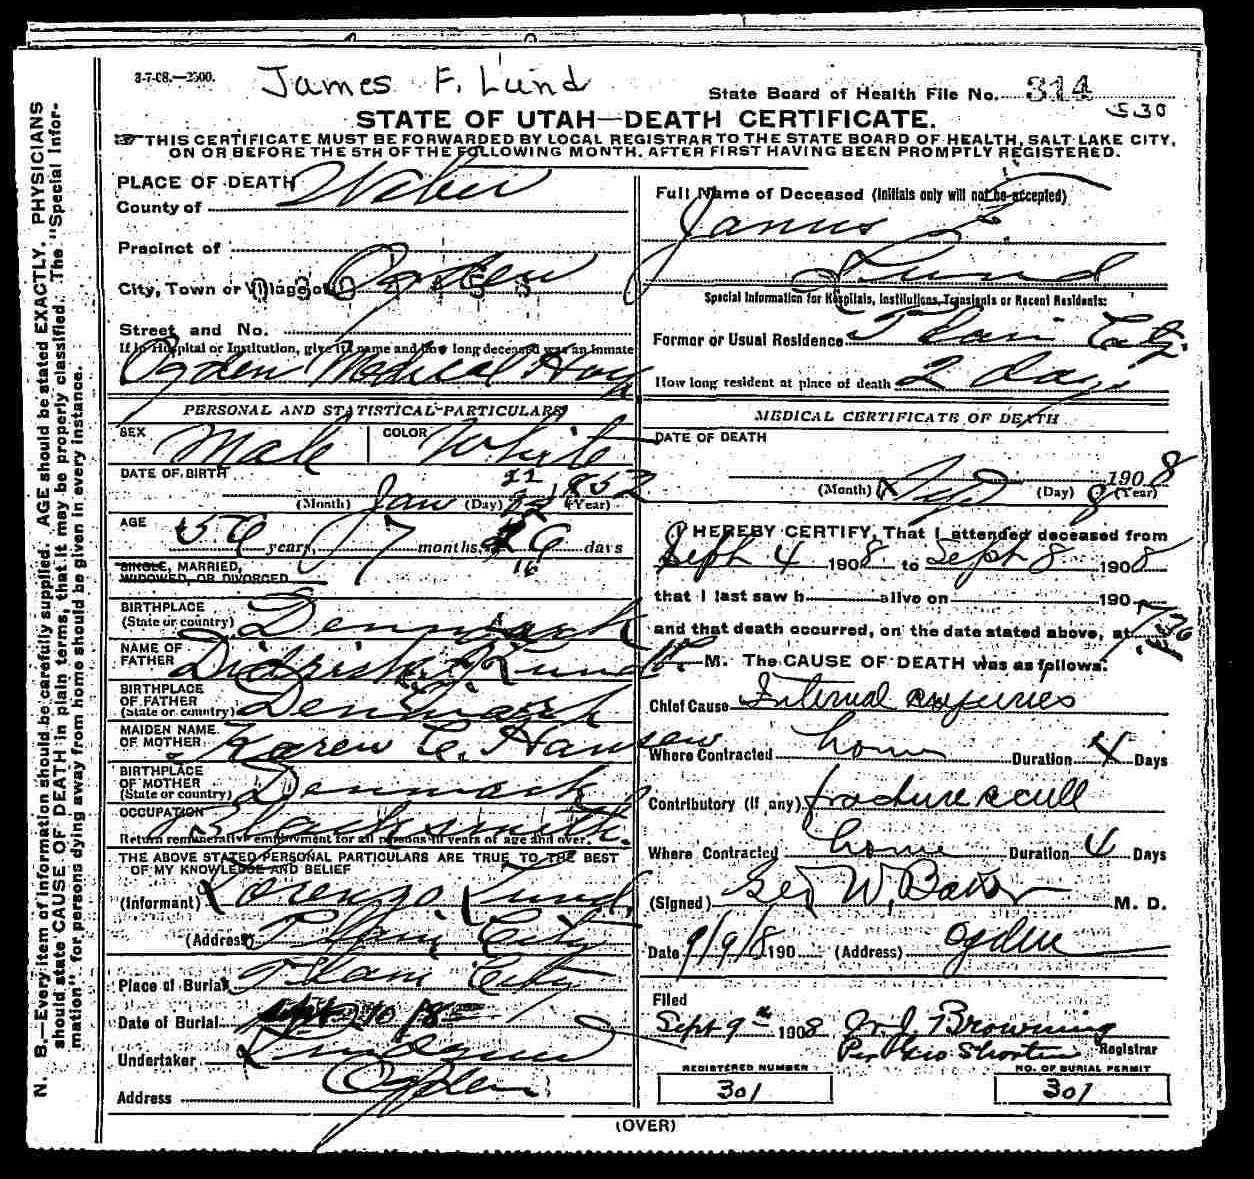 Lundology janus f lund death certificate source state of utah utah death certificates 1904 1956 entry no 18282 janus f lund 8 september 1908 digital images utah state archives and records 1betcityfo Choice Image